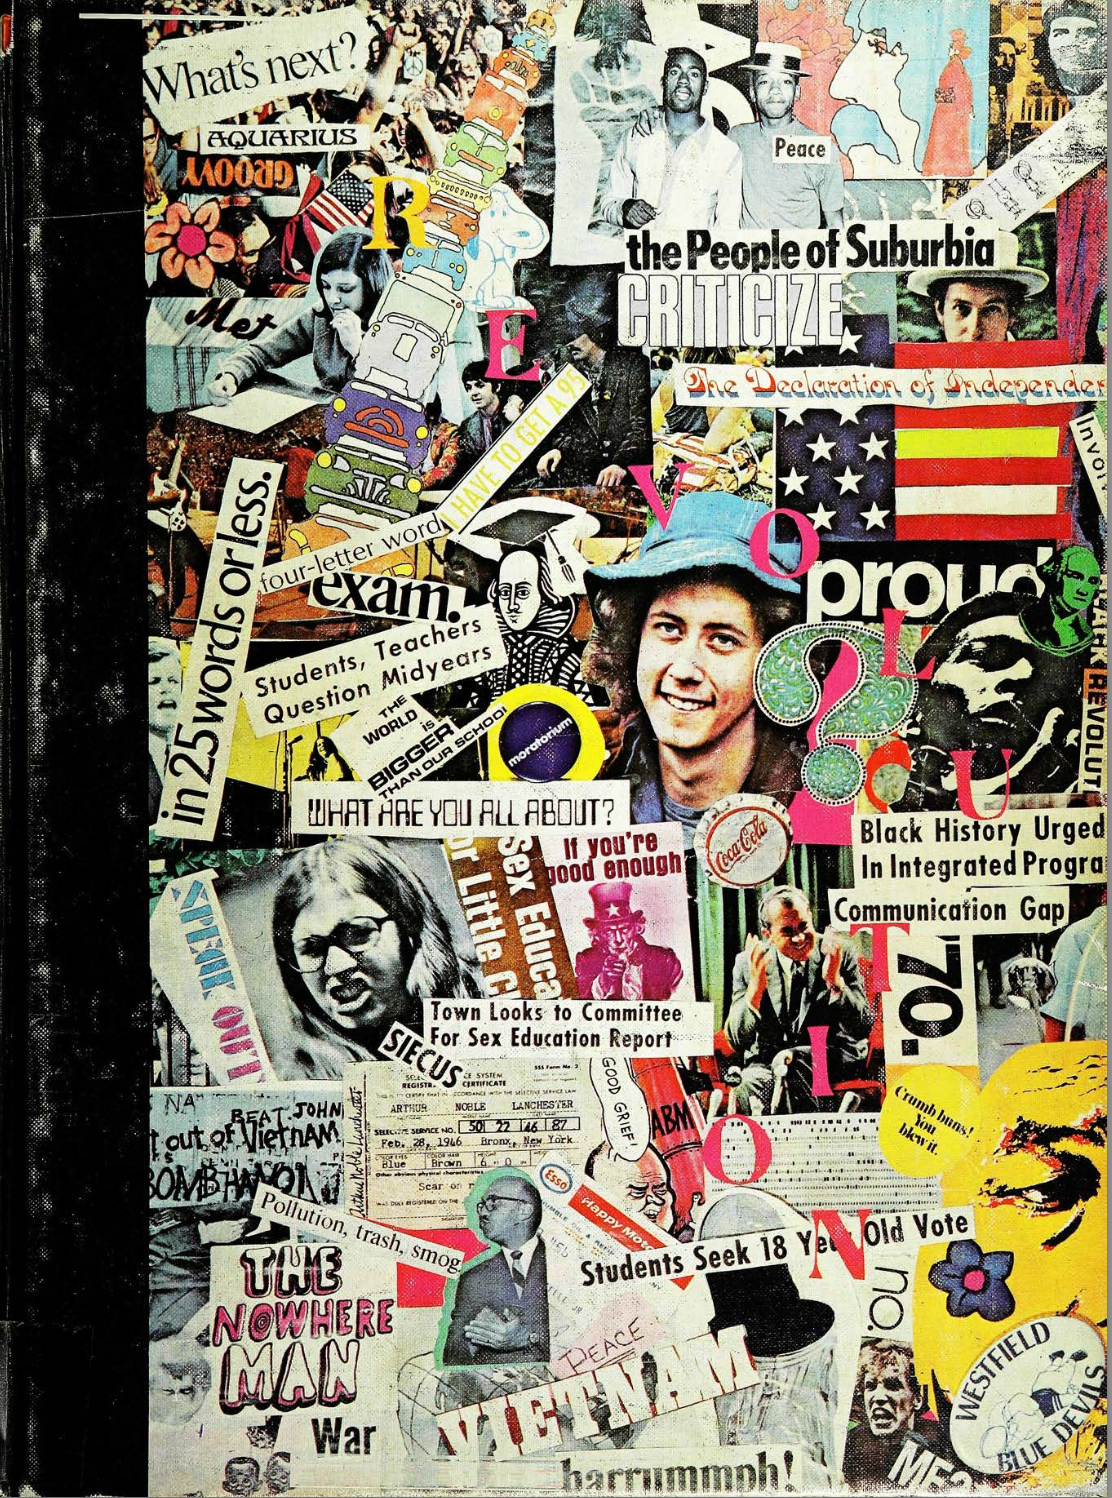 WHS yearbook cover in 1970